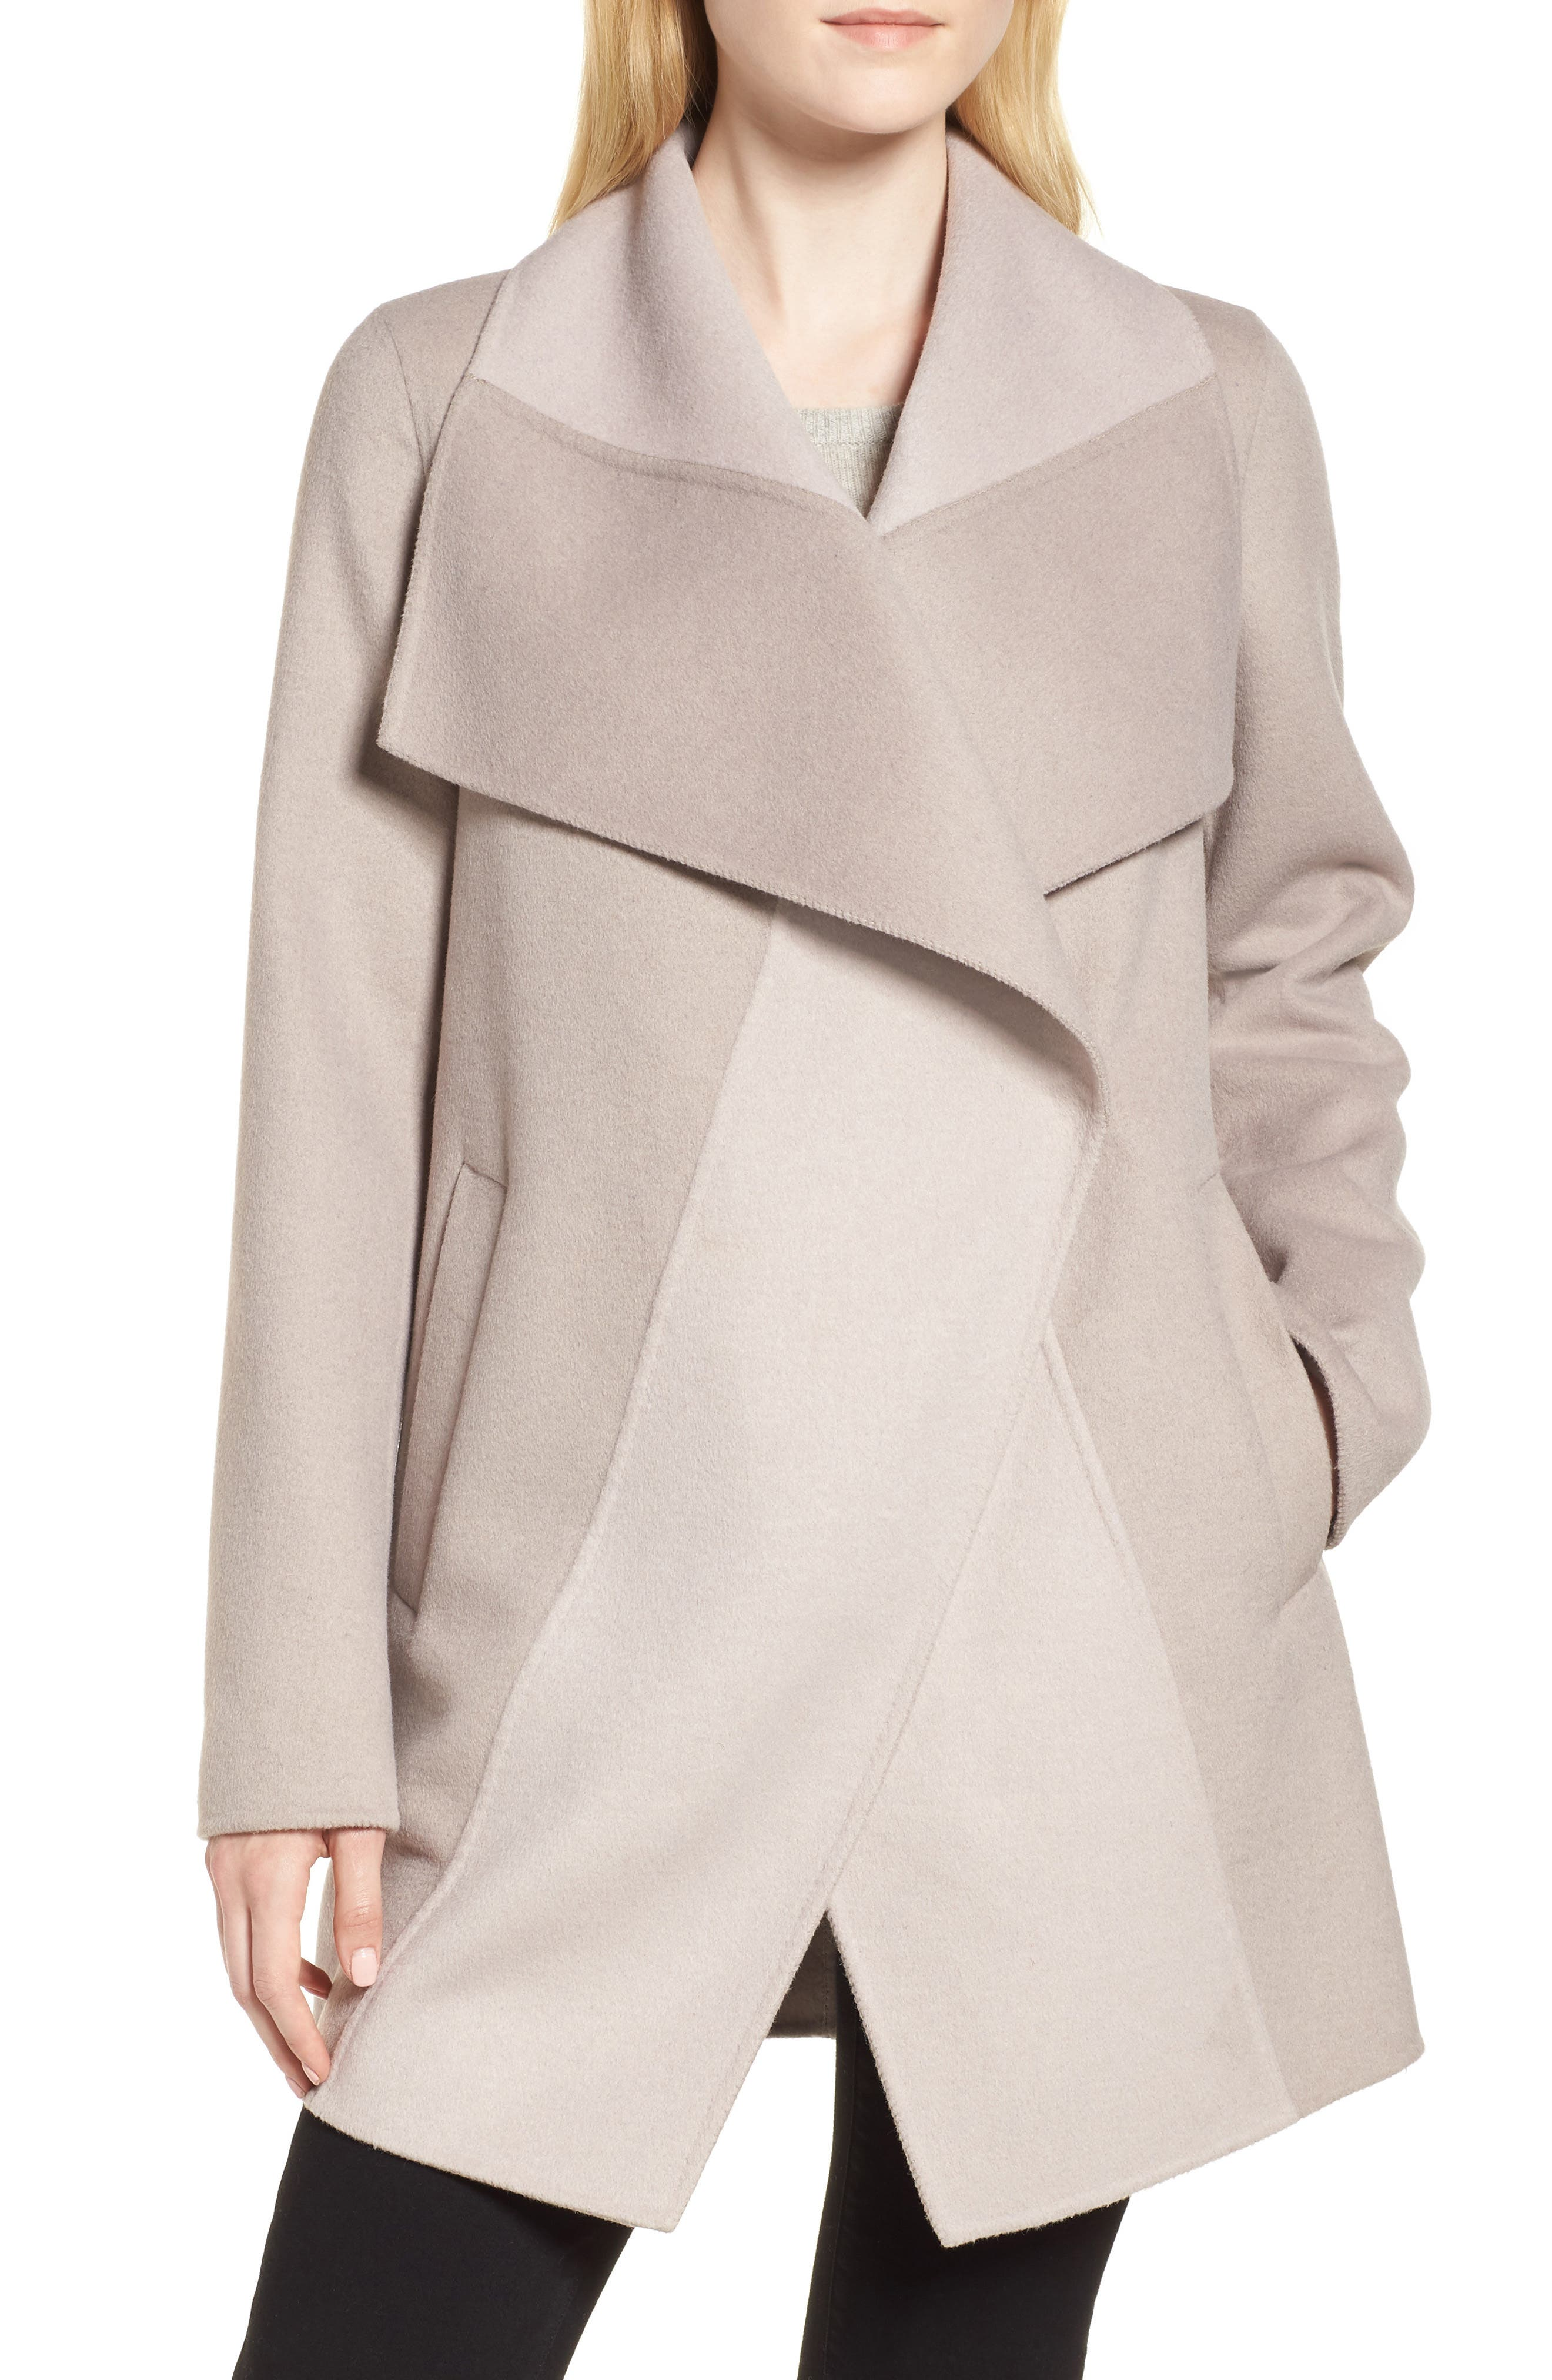 Nicky Double Face Wool Blend Oversize Coat,                             Main thumbnail 1, color,                             OYSTER BAY/ BROWN SUGAR